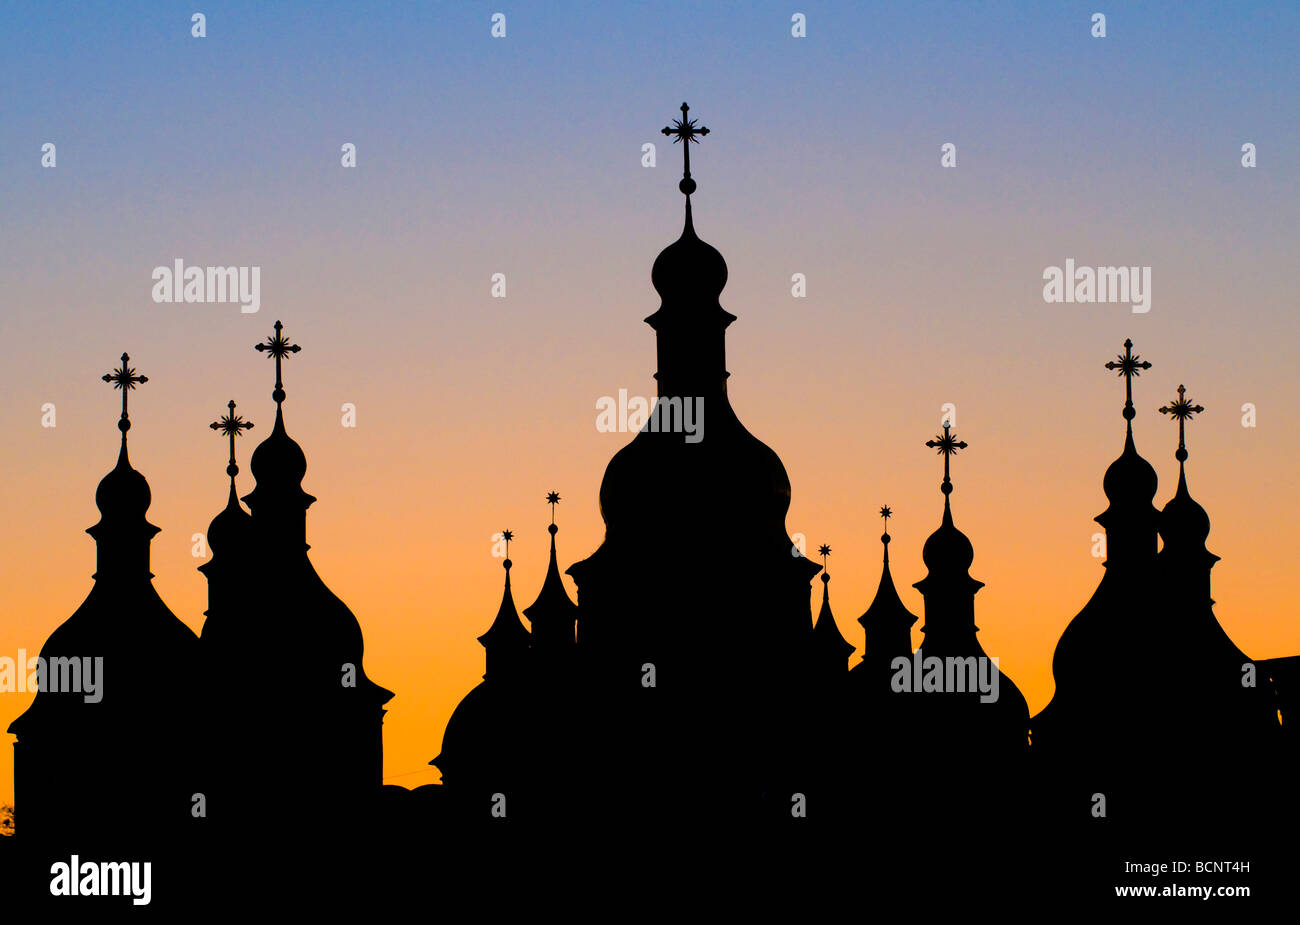 silhouette of church in Kiev the capital of Ukraine - Stock Image